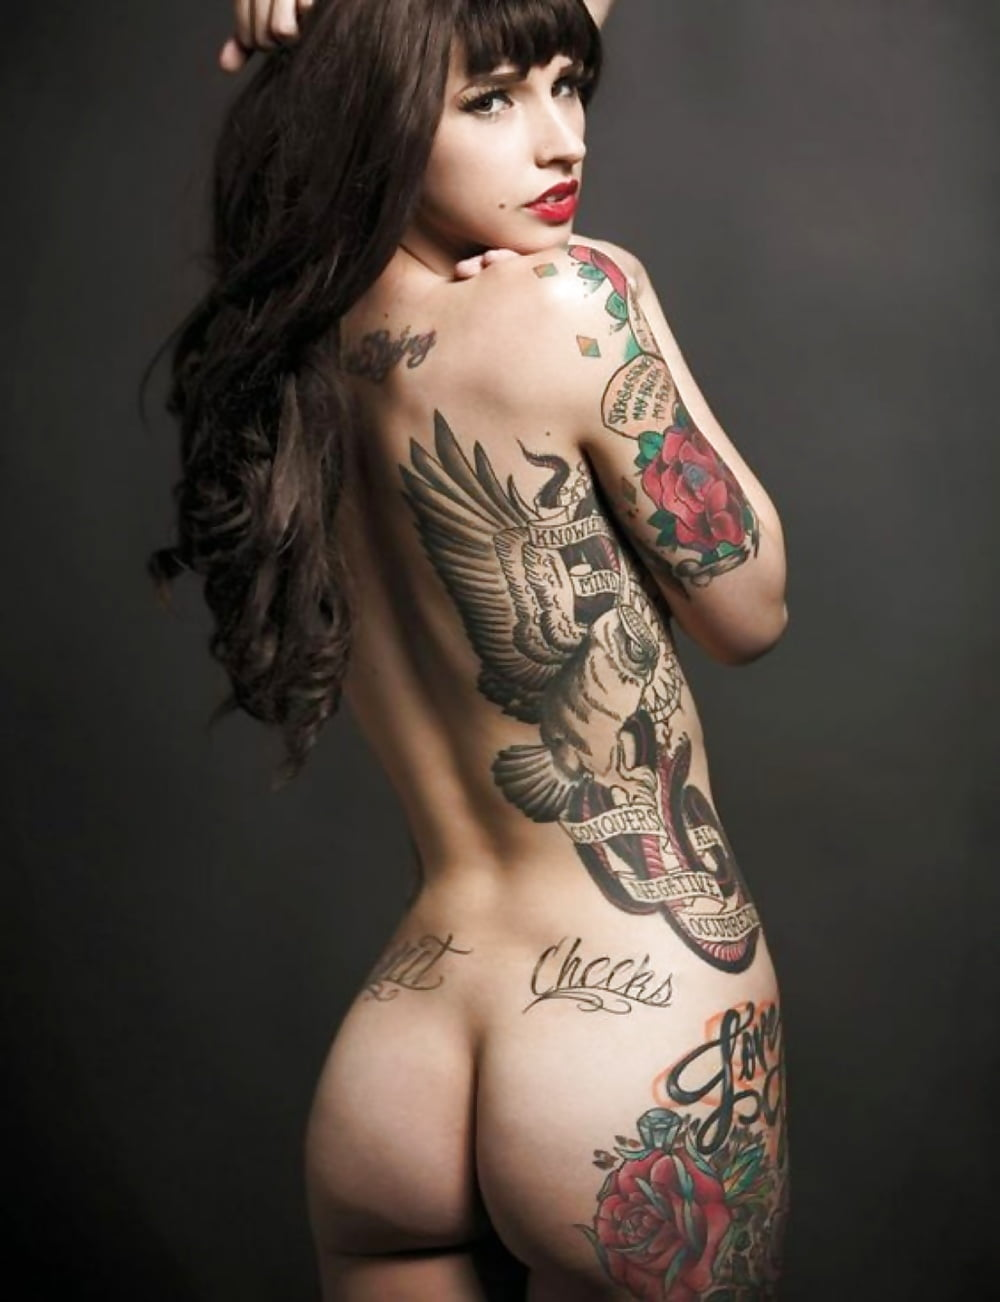 Caliber girls sexy hot naked girl tattoos